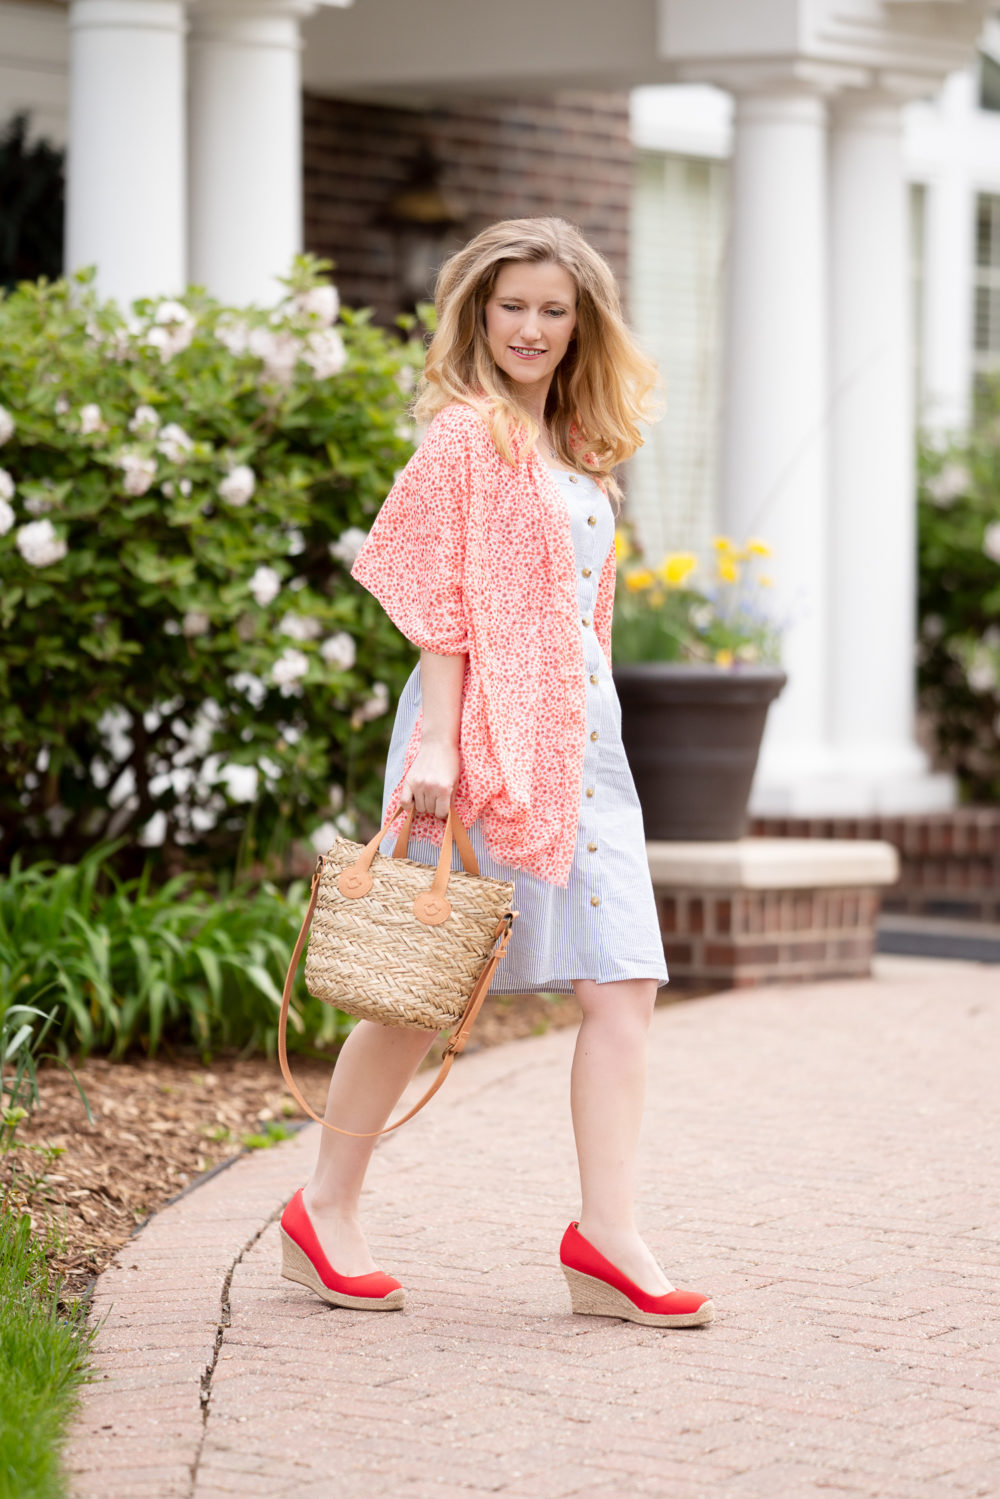 Petite Fashion Blog | J. Crew Factory Button-front dress in seersucker | Stripe sundress | floral scarf | Target straw bag